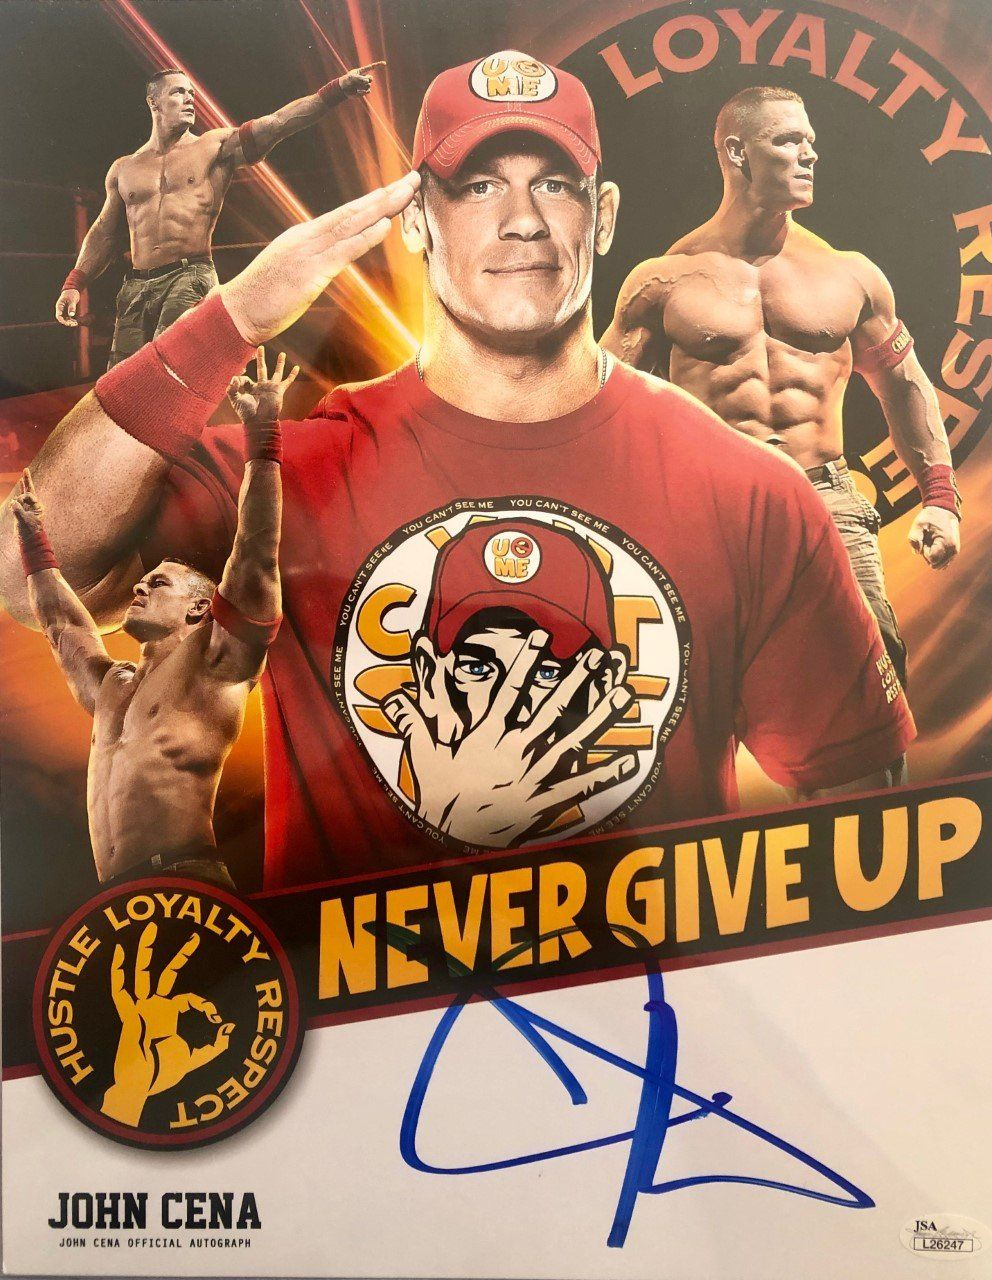 Wwe John Cena 11x14 Signed Photo Official Autograph Jsa